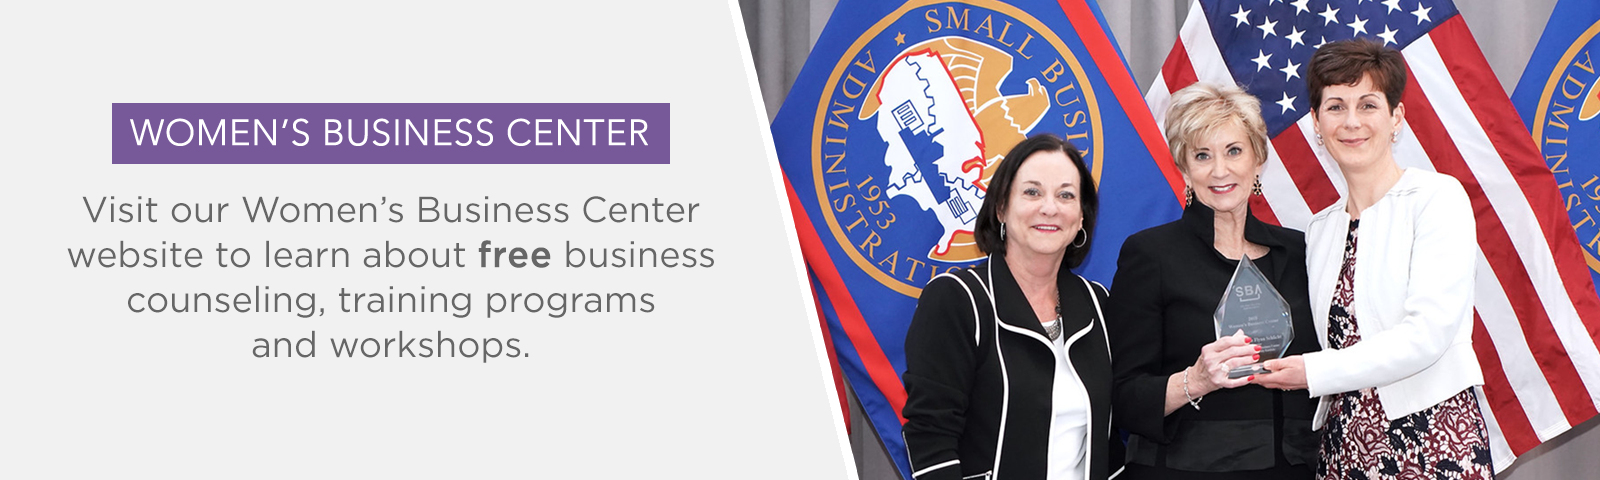 Visit our Women's Business Center (WBC) website to learn about free business counseling, events and more